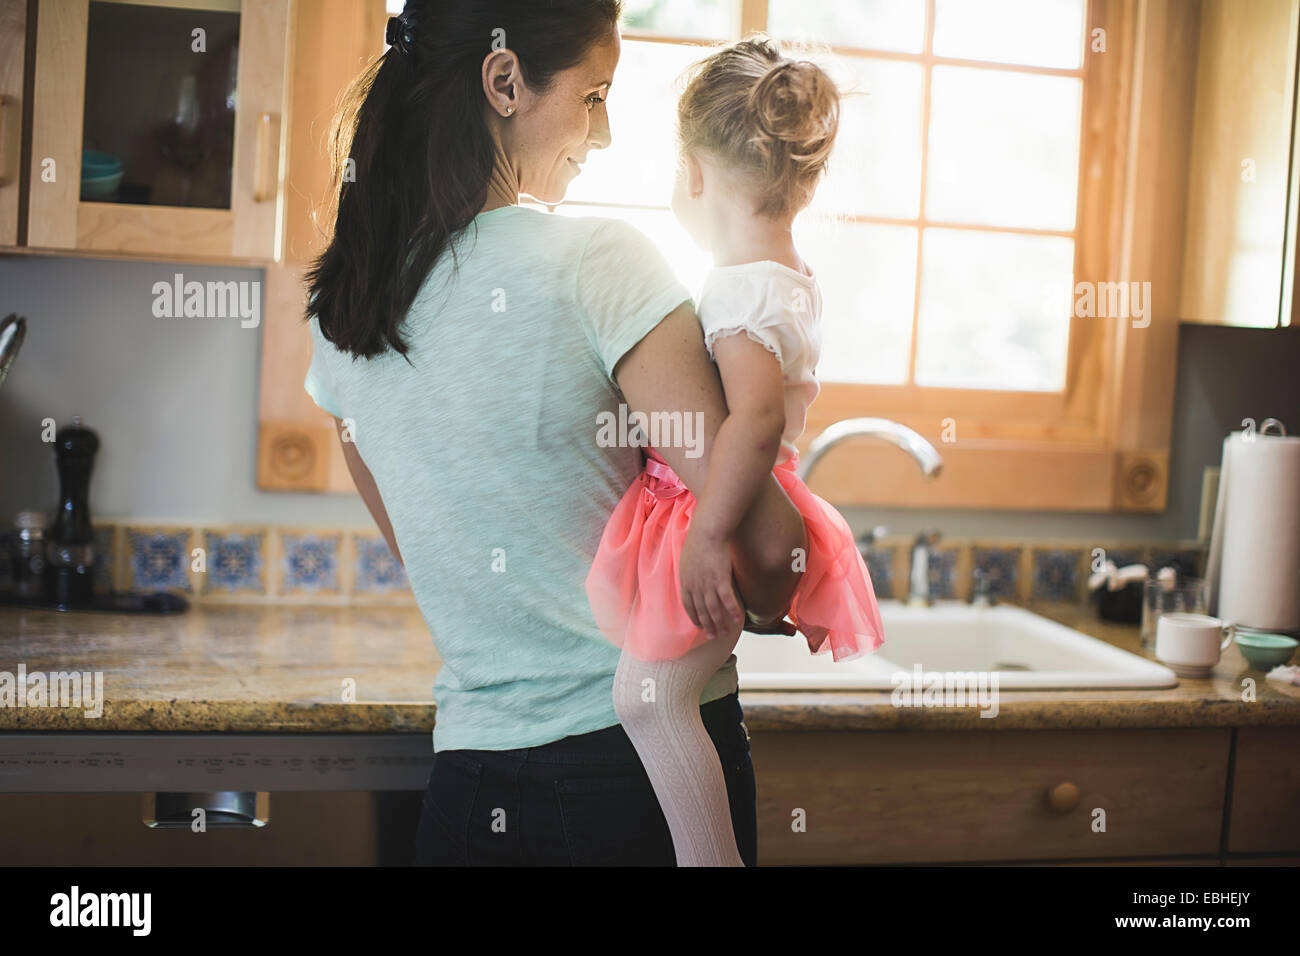 Mother and daughter playing in kitchen - Stock Image